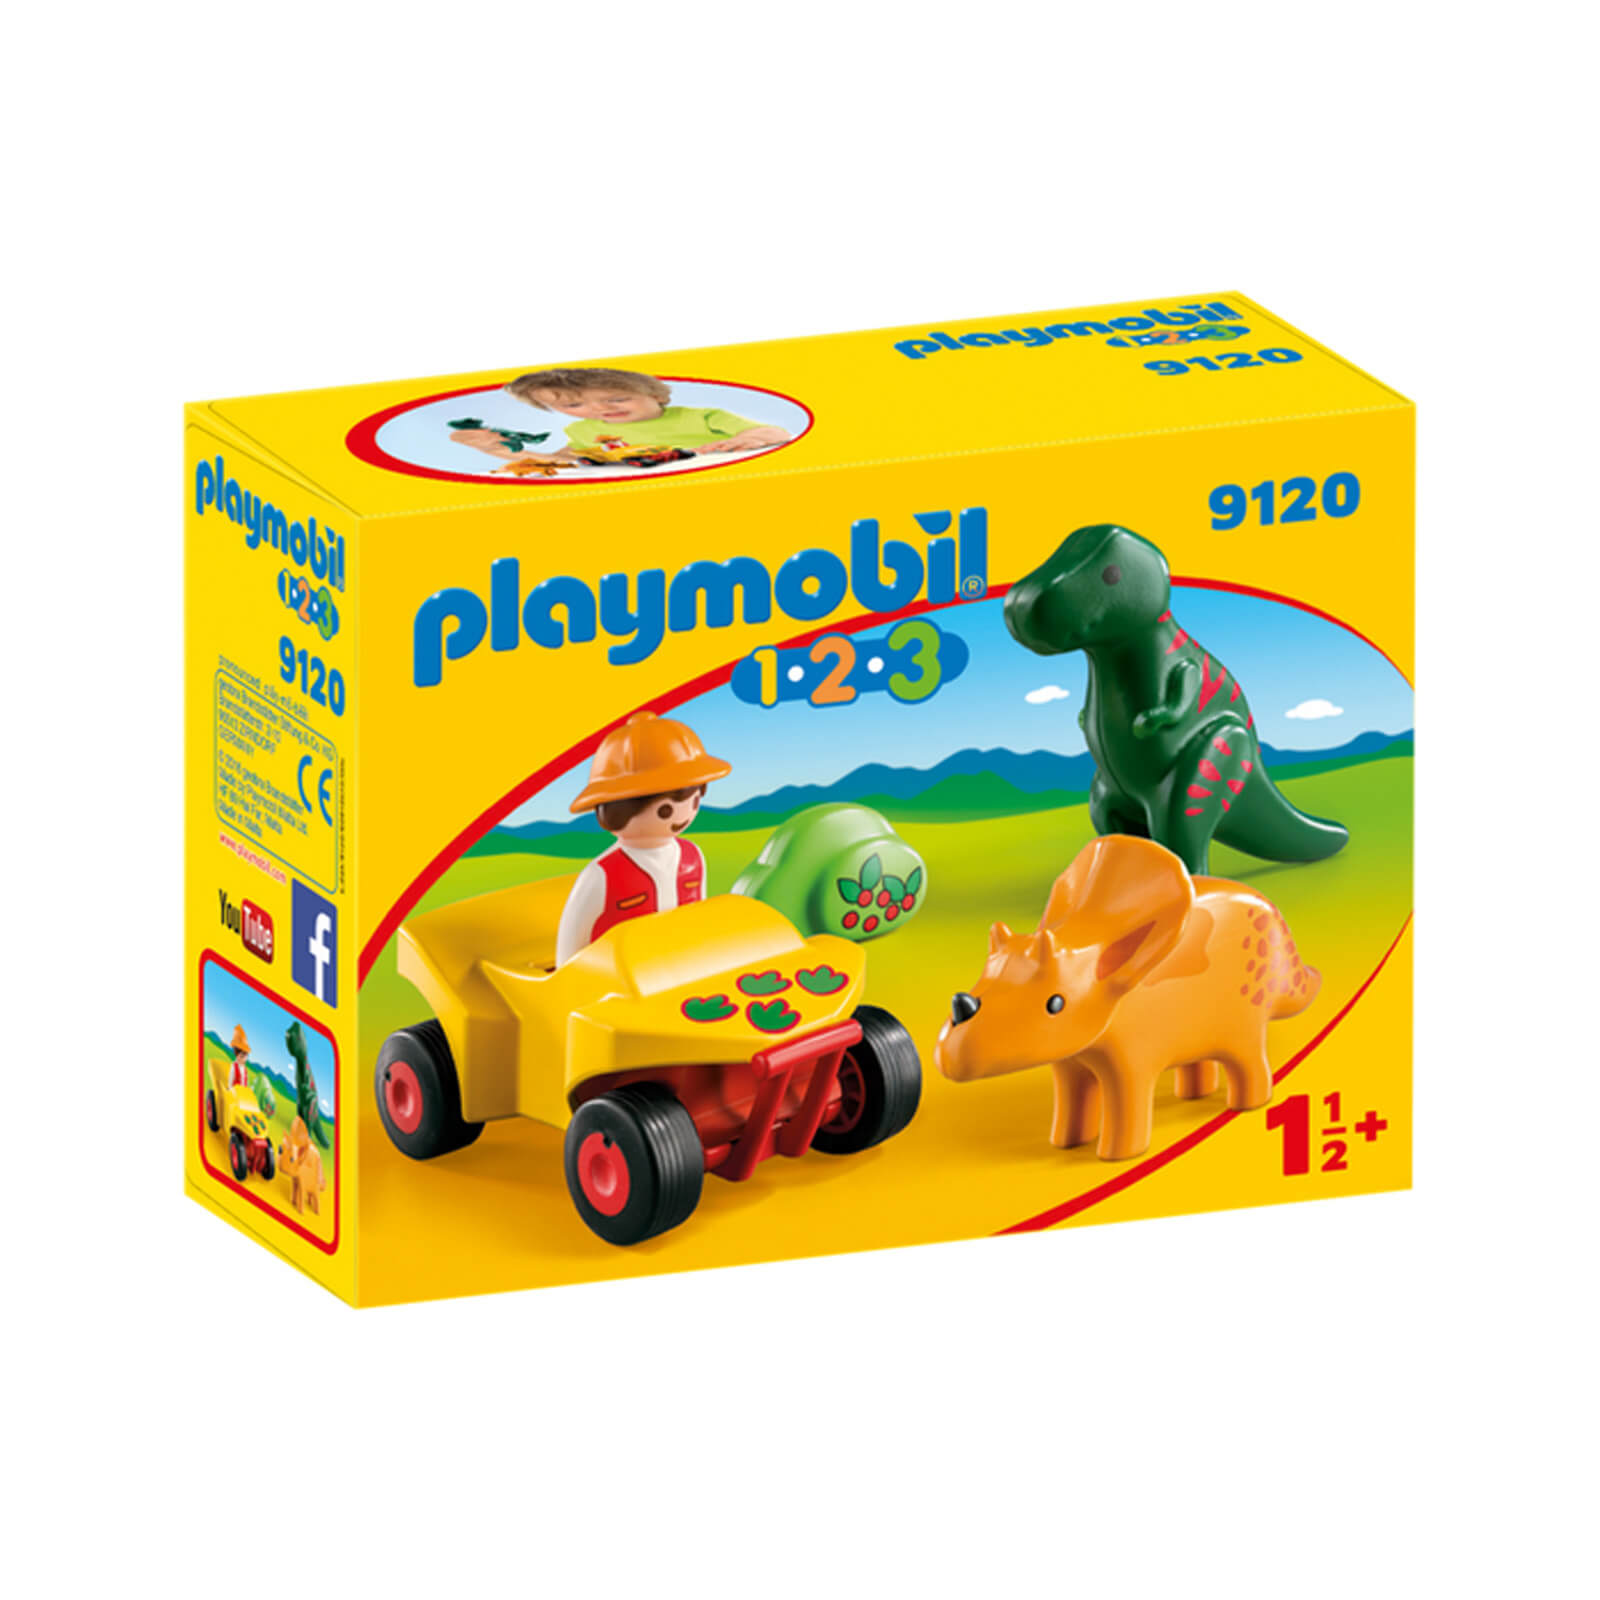 5302 Playmobil Playmobil 1 2 3 Explorer With Dinos 9120